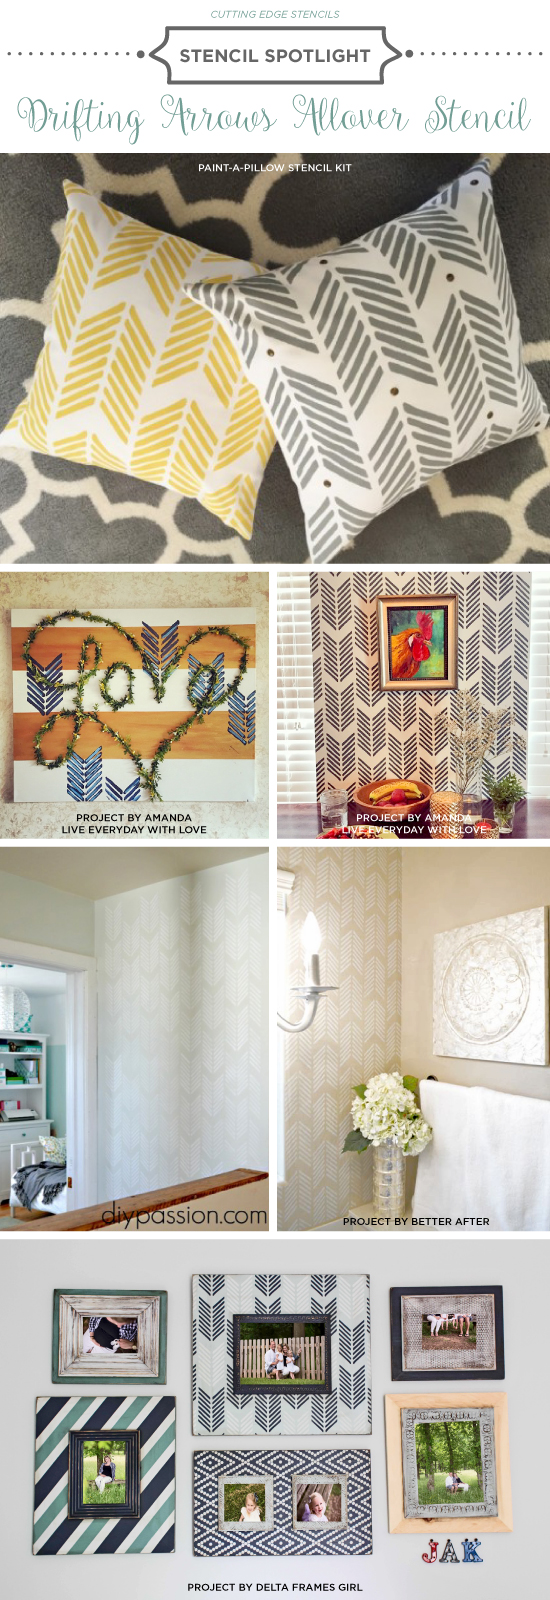 Cutting Edge Stencils shares DIY room ideas featuring the Drifting Arrows Allover wall pattern. http://www.cuttingedgestencils.com/drifting-arrows-stencil-pattern-diy-decor.html